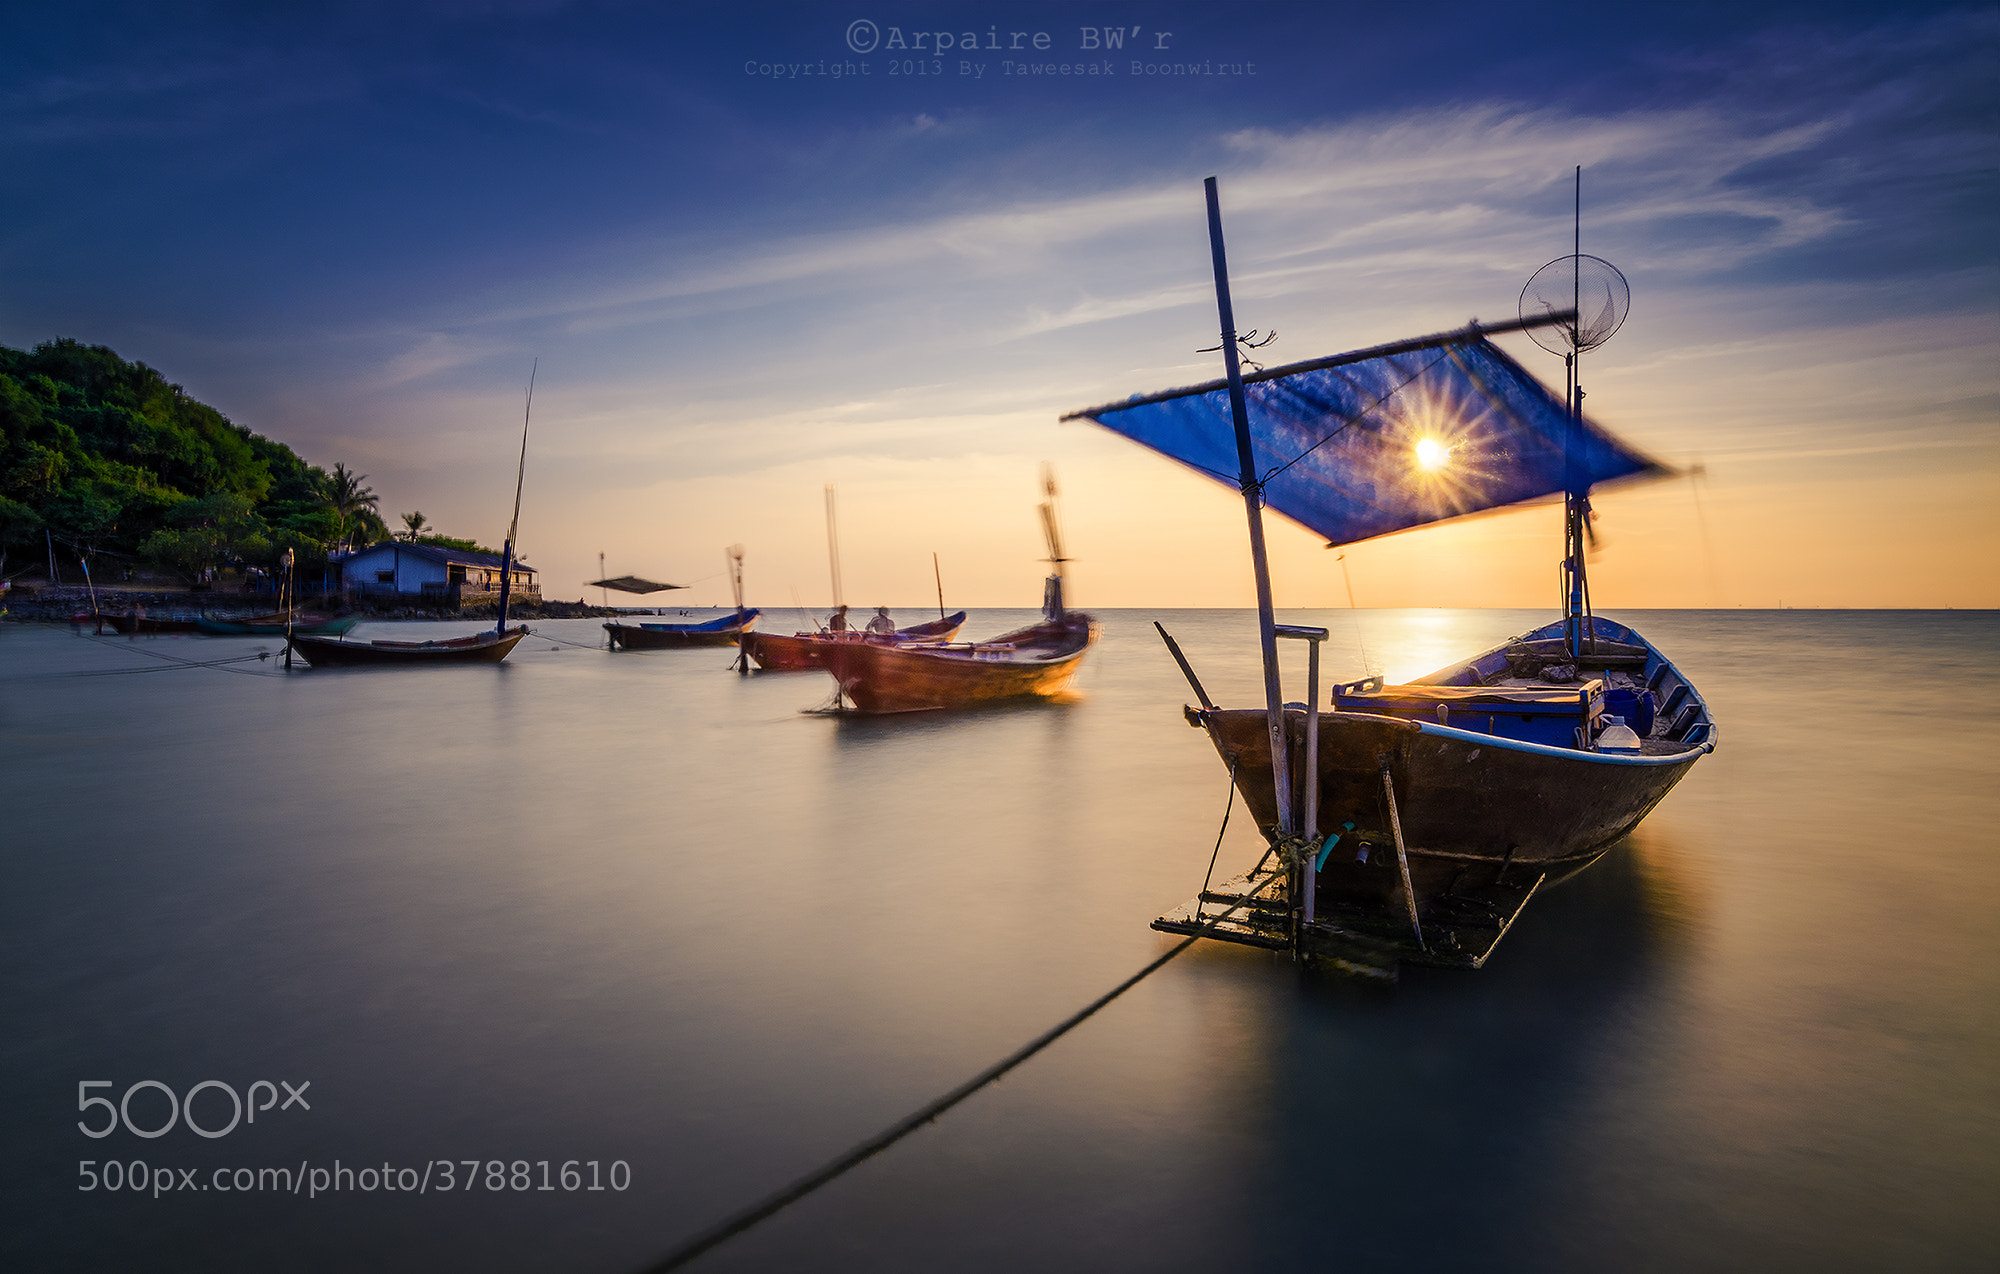 Photograph Fishing Boats by Taweesak Boonwirut on 500px